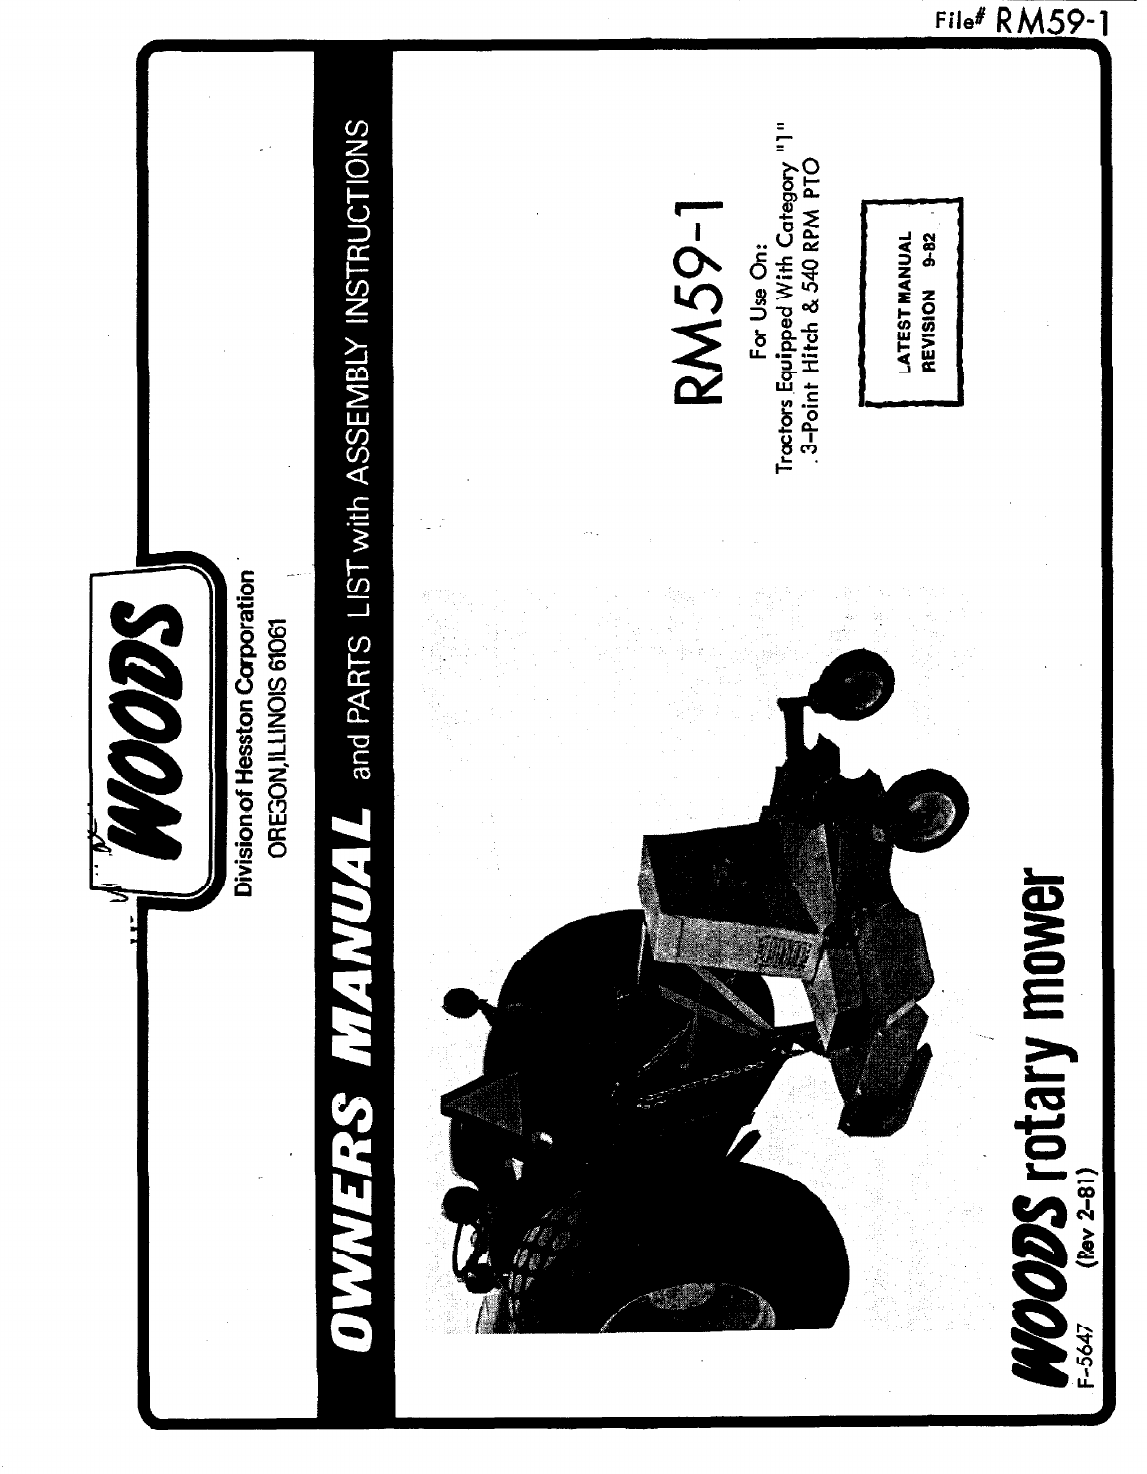 Woods RM59-1 Owner's Manual